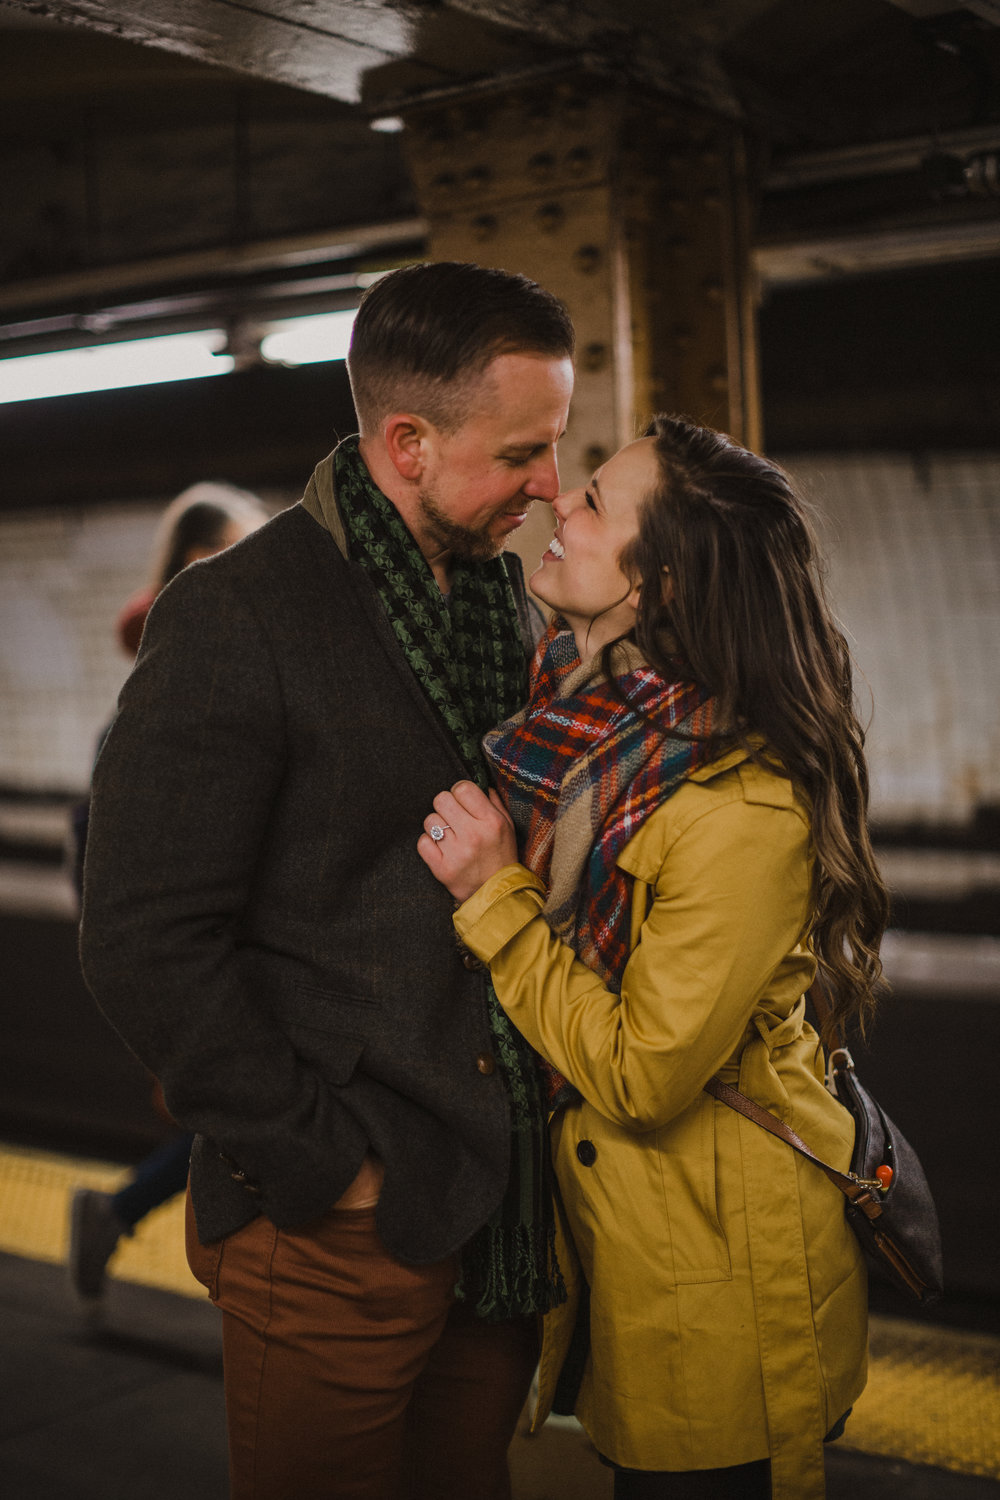 brooke+jason_engagement-138.jpg